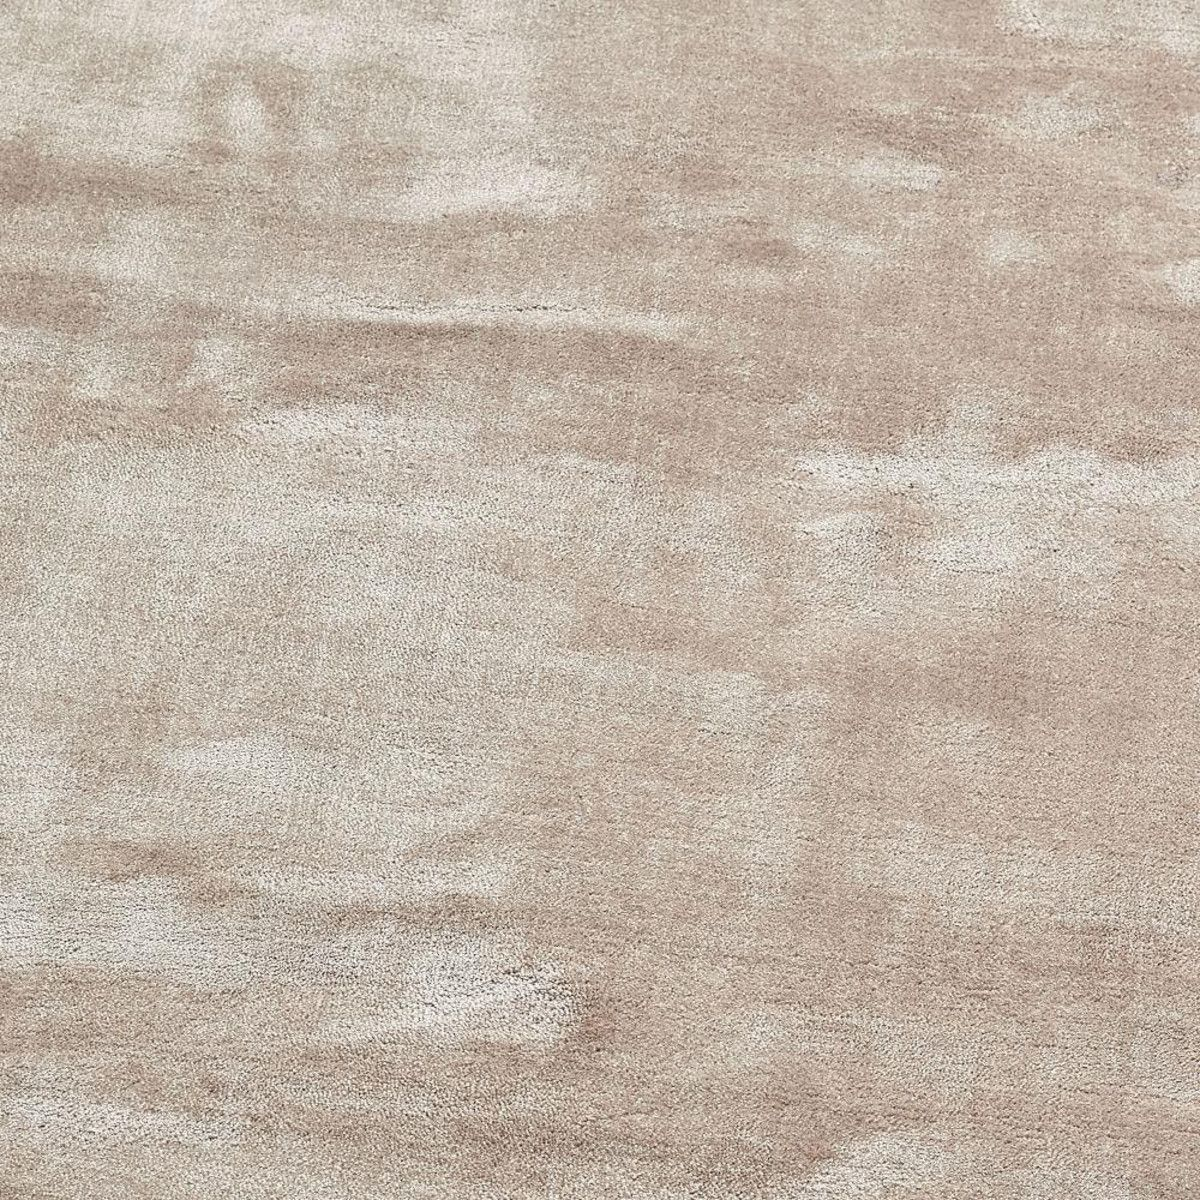 Lucent Rug Dusty Blush My Bedroom Rugs Soft